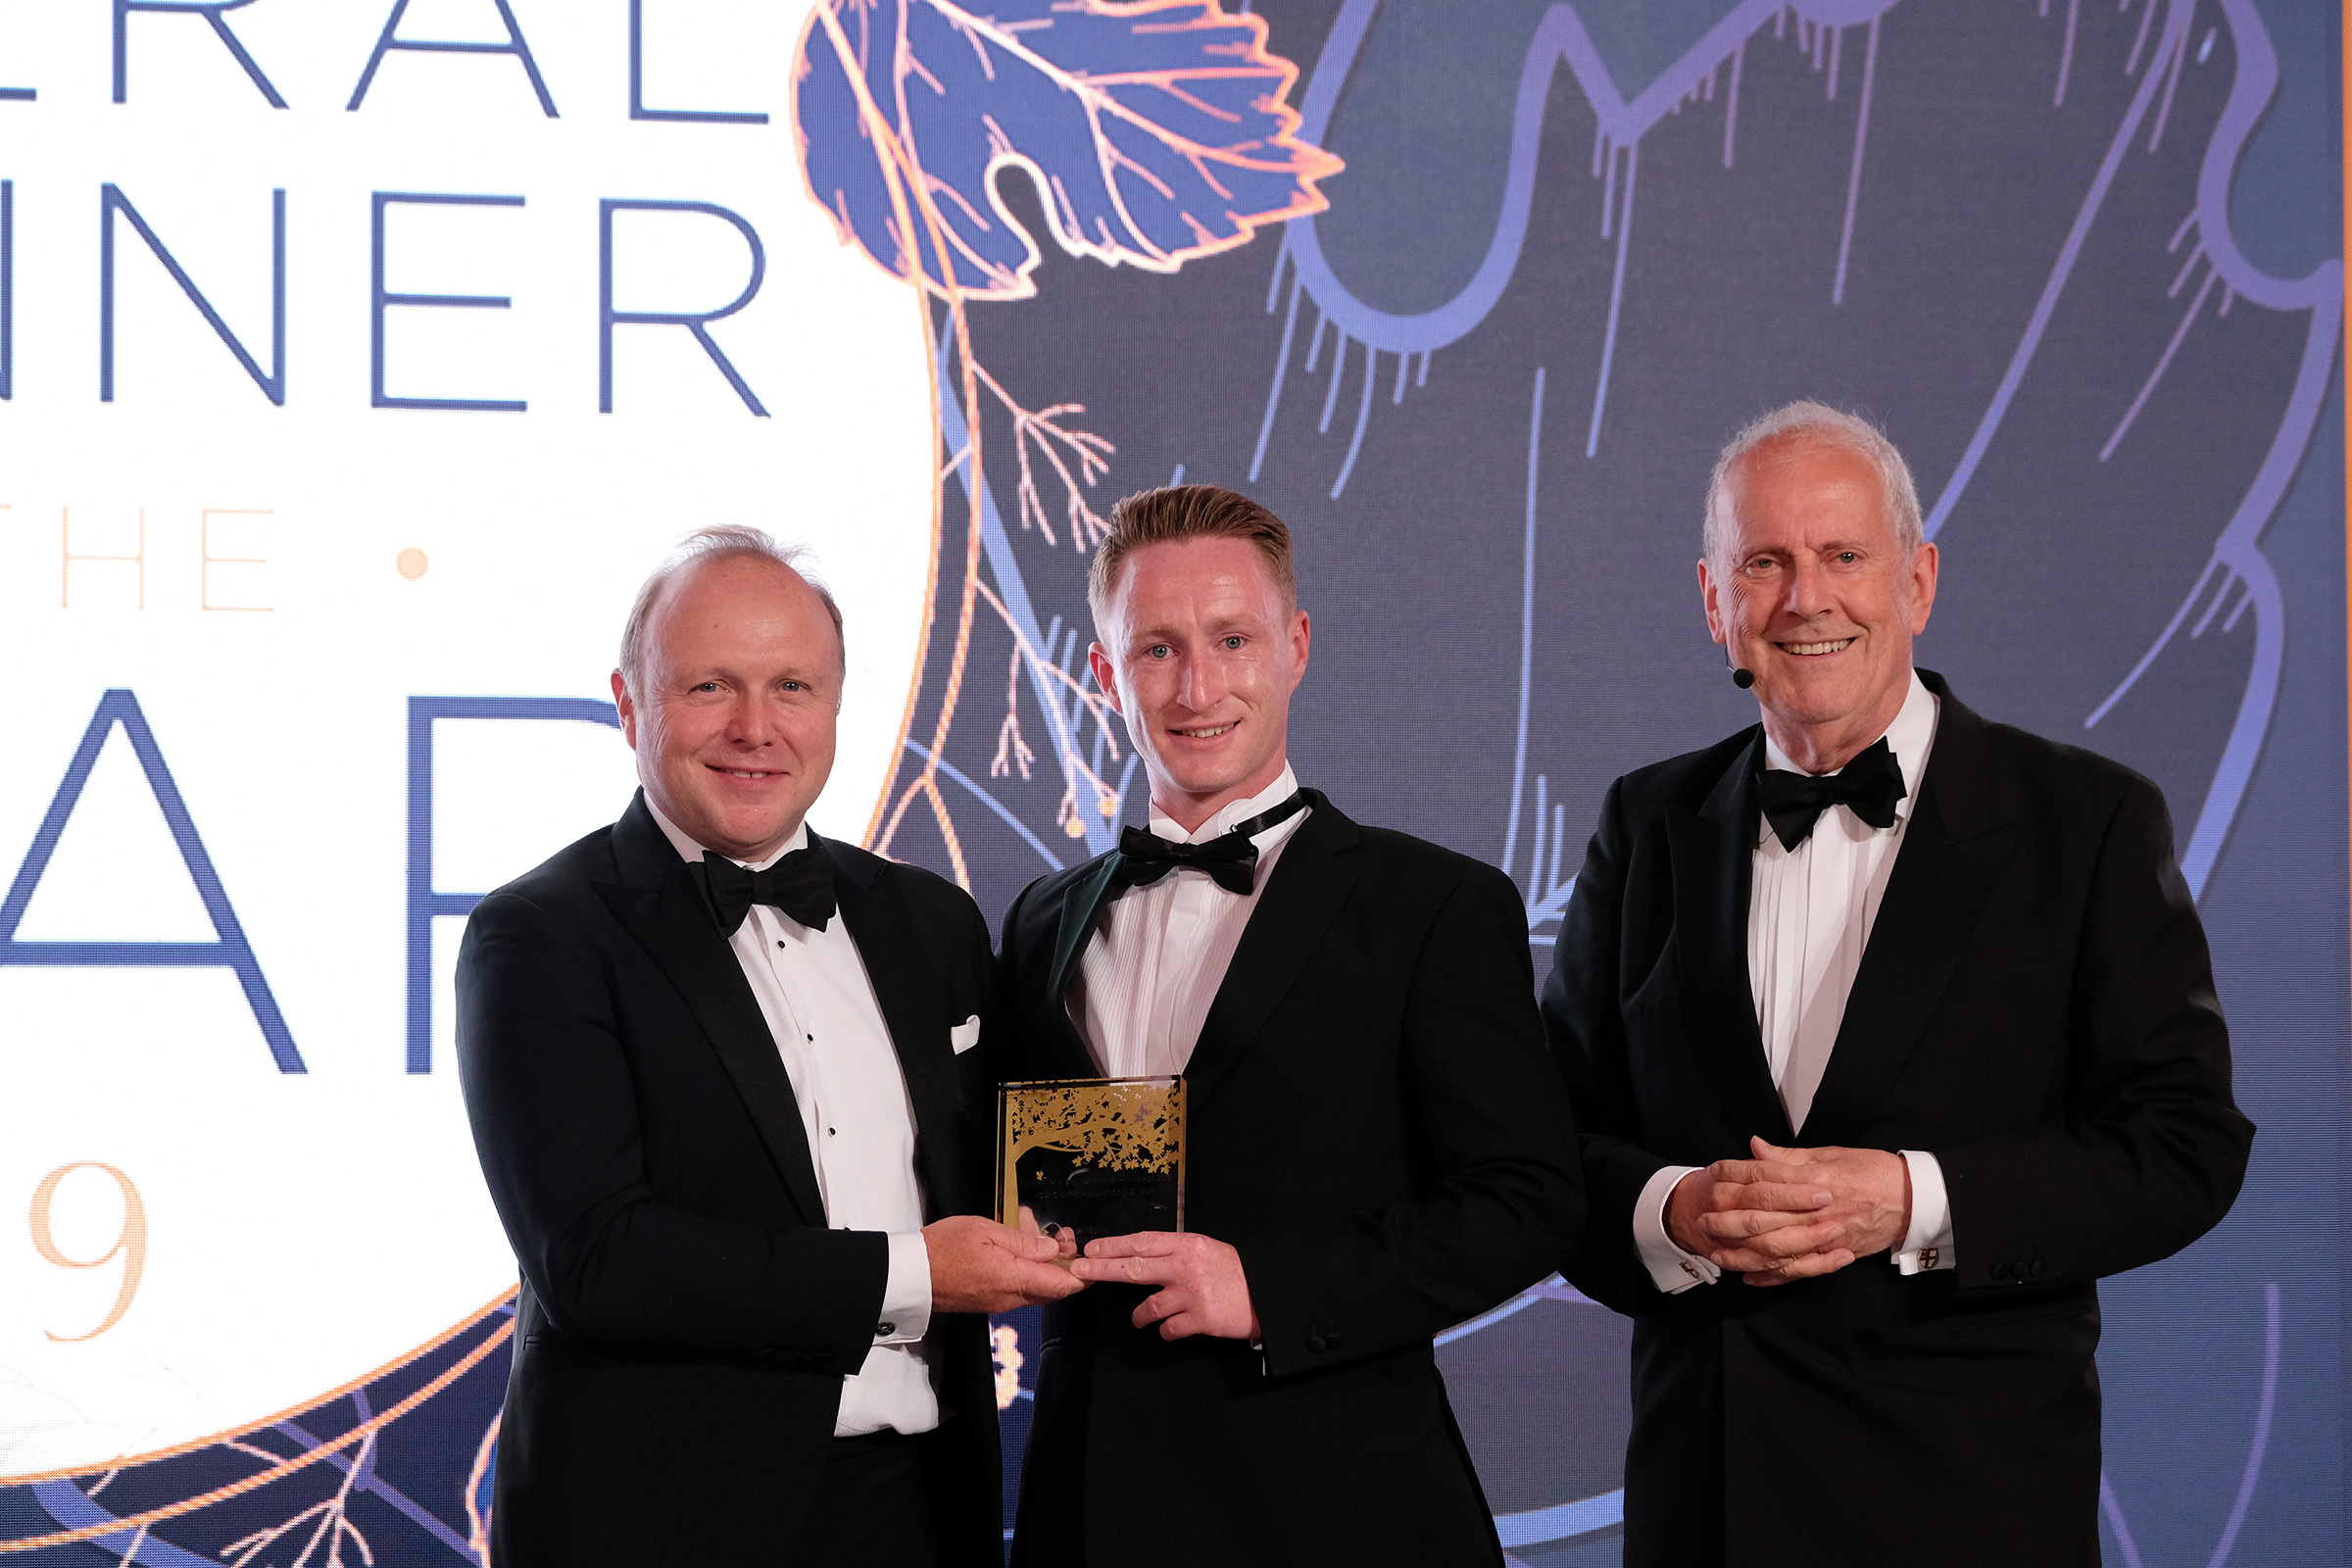 Funeral director Carl Boswell wins top accolade